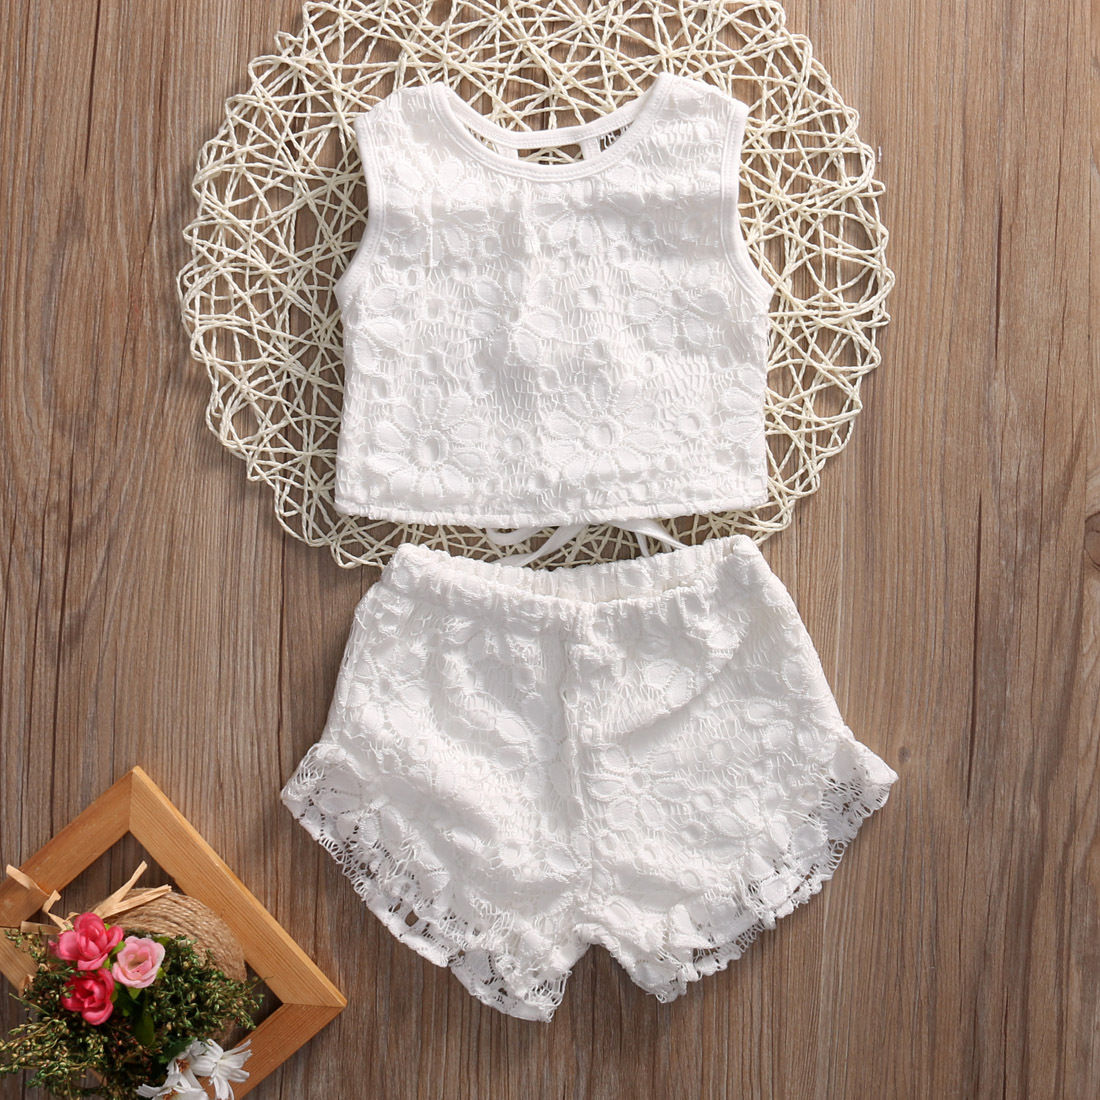 Toddler Baby Girls Clothes Kids Summer Floral Lace Sleeveless Tops Shirt Shorts Outfits Set girl Clothing 3pcs outfit infantil girls clothes toddler baby girl plaid ruffled tops kids girls denim shorts cute headband summer outfits set